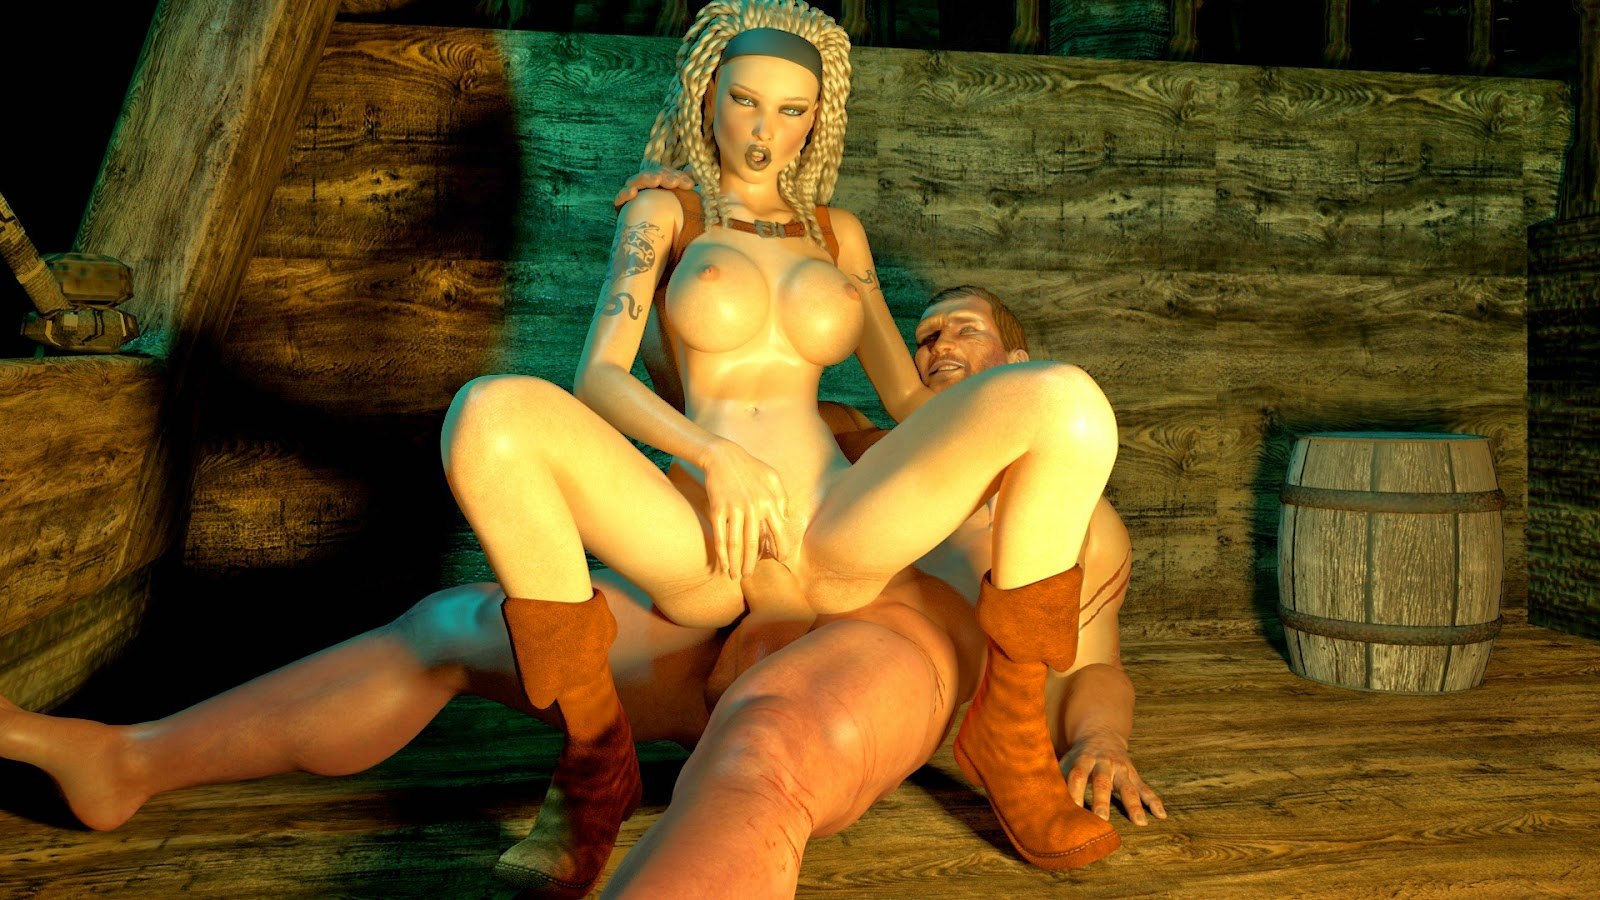 Free download game porn pc sex comics